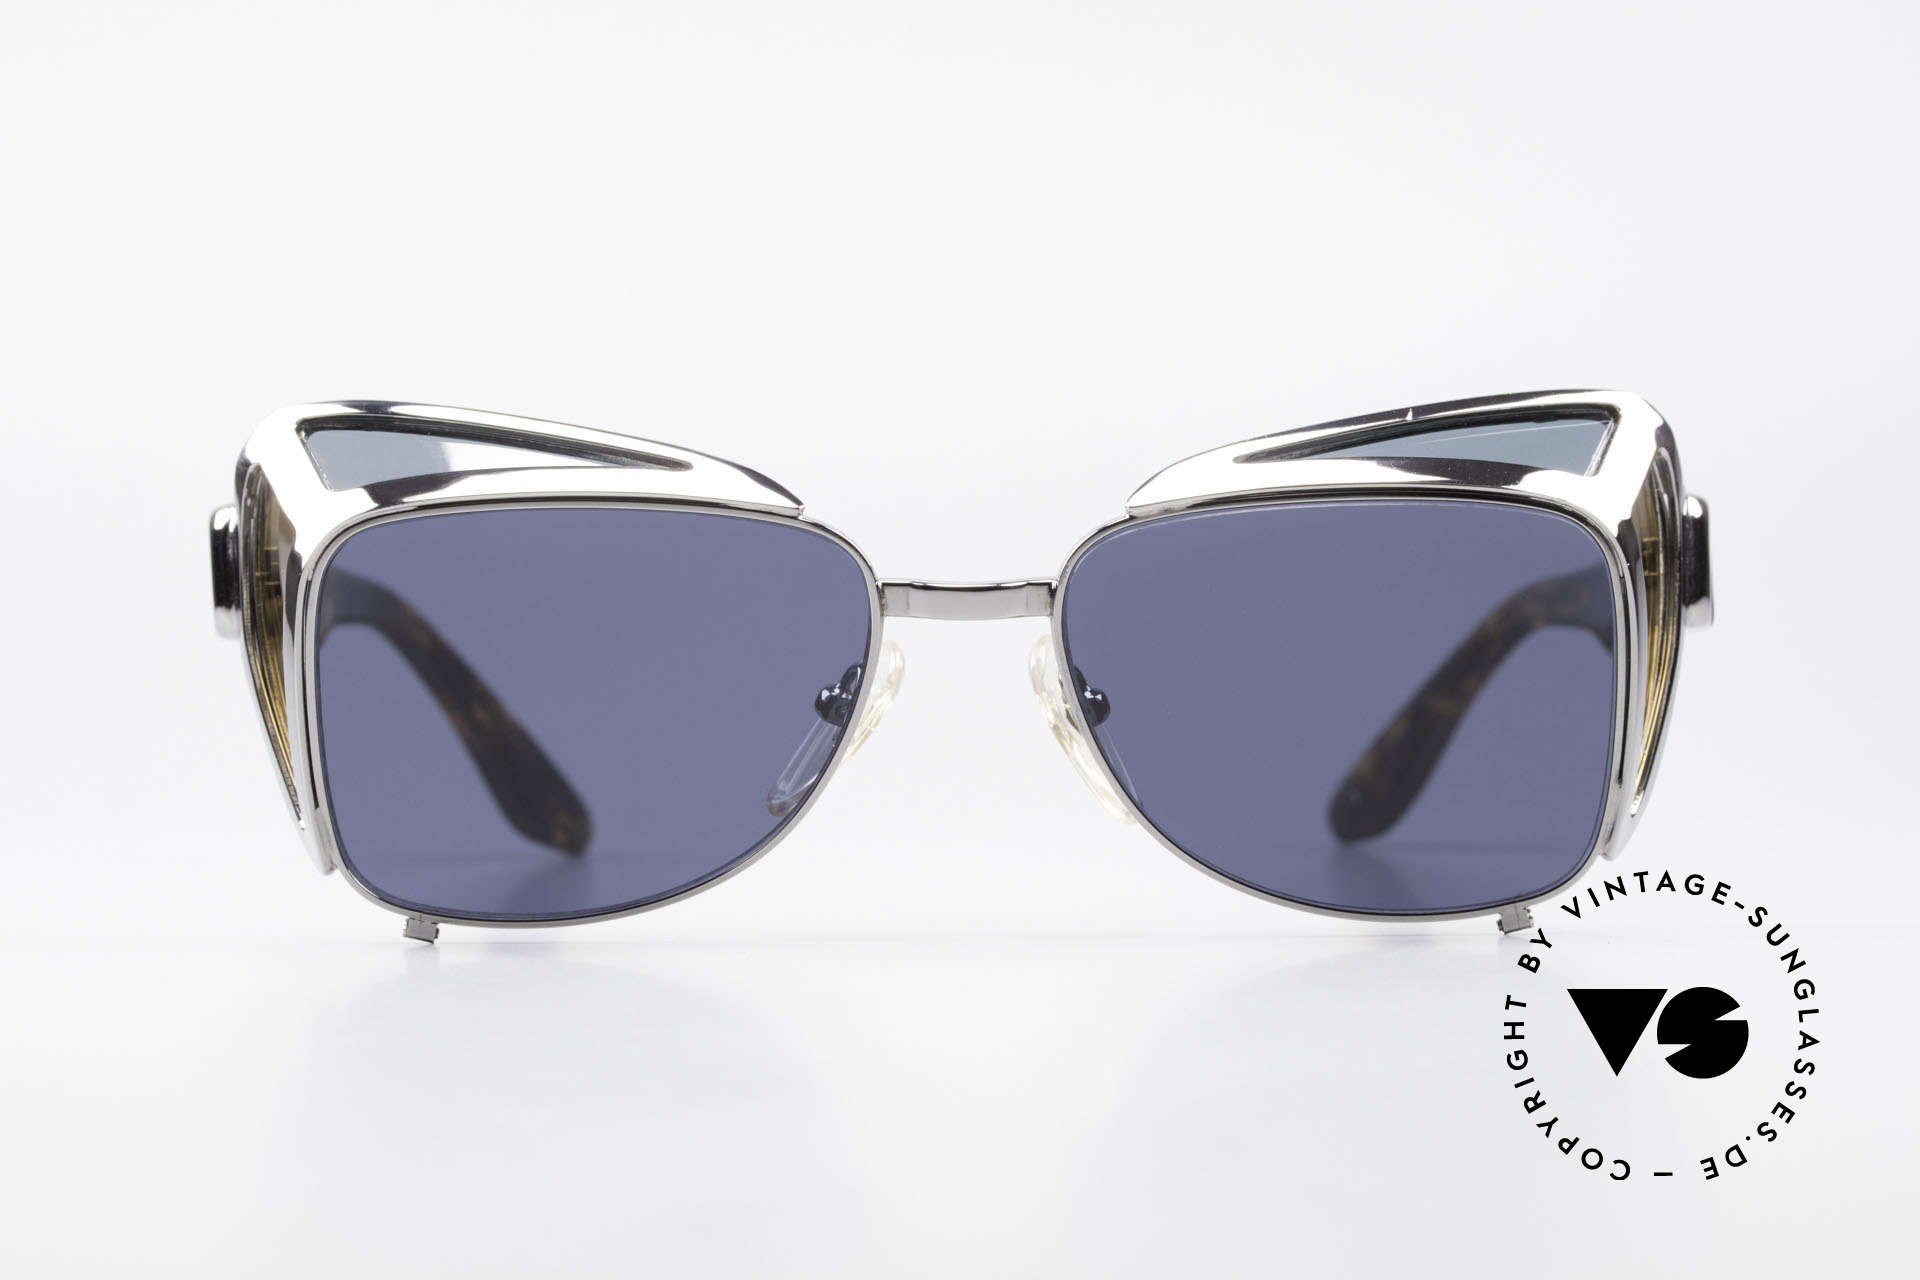 Jean Paul Gaultier 56-9272 Rare Steampunk Sunglasses, very rare designer model (90's limited edition), Made for Men